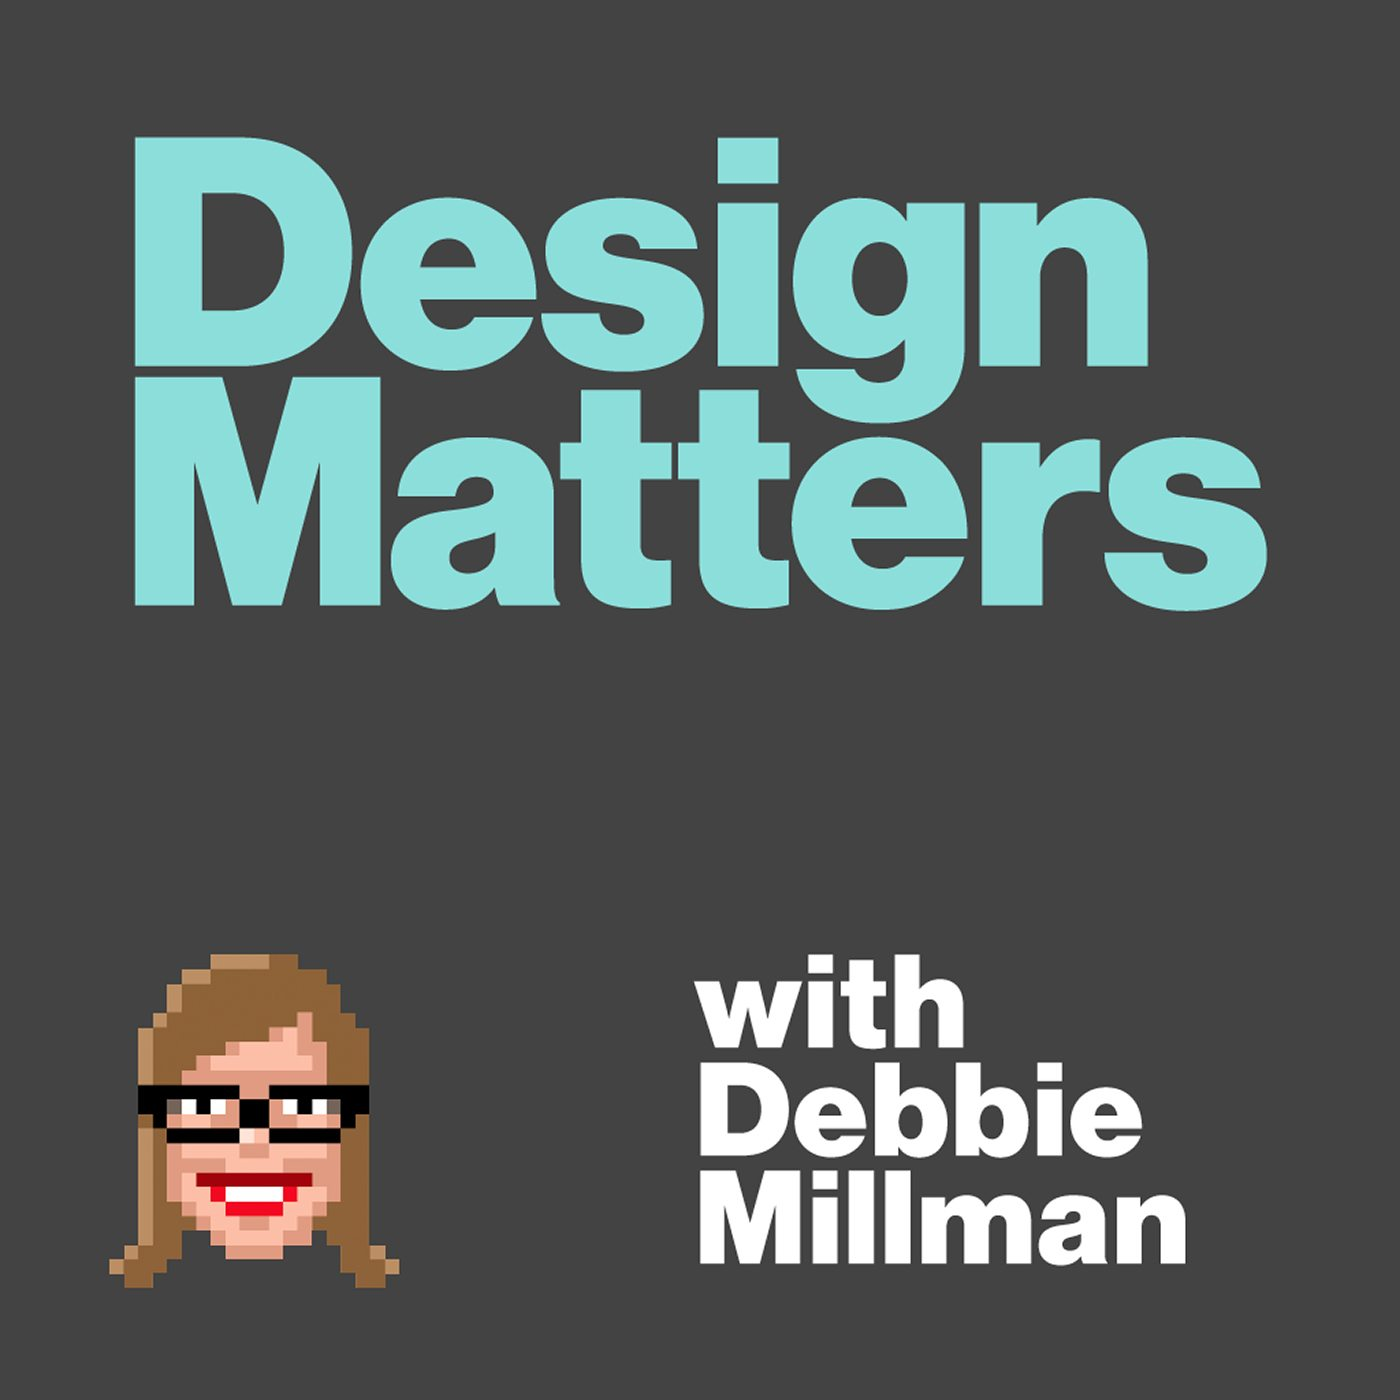 Design Matters: a top design podcast by Debbie Millman